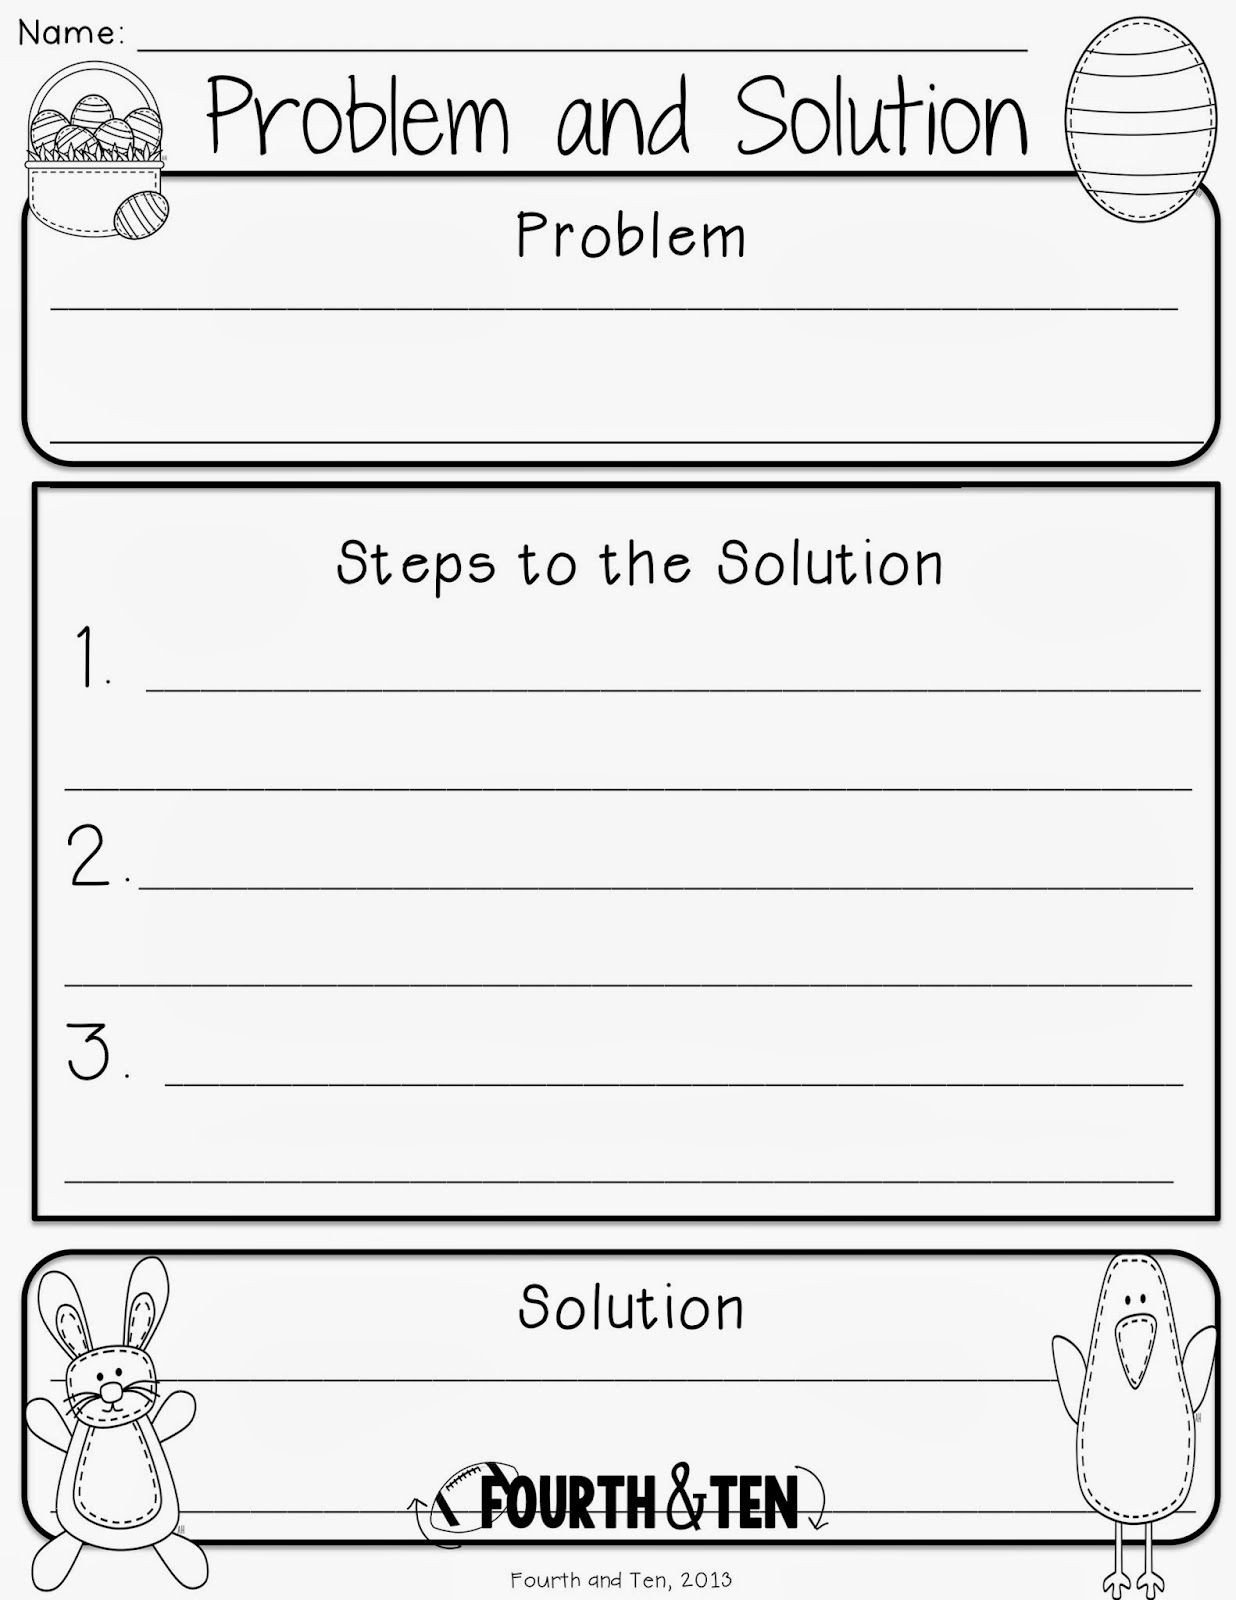 Problem and solution Reading Worksheets Easter Graphic organizers Reading Writing Problem